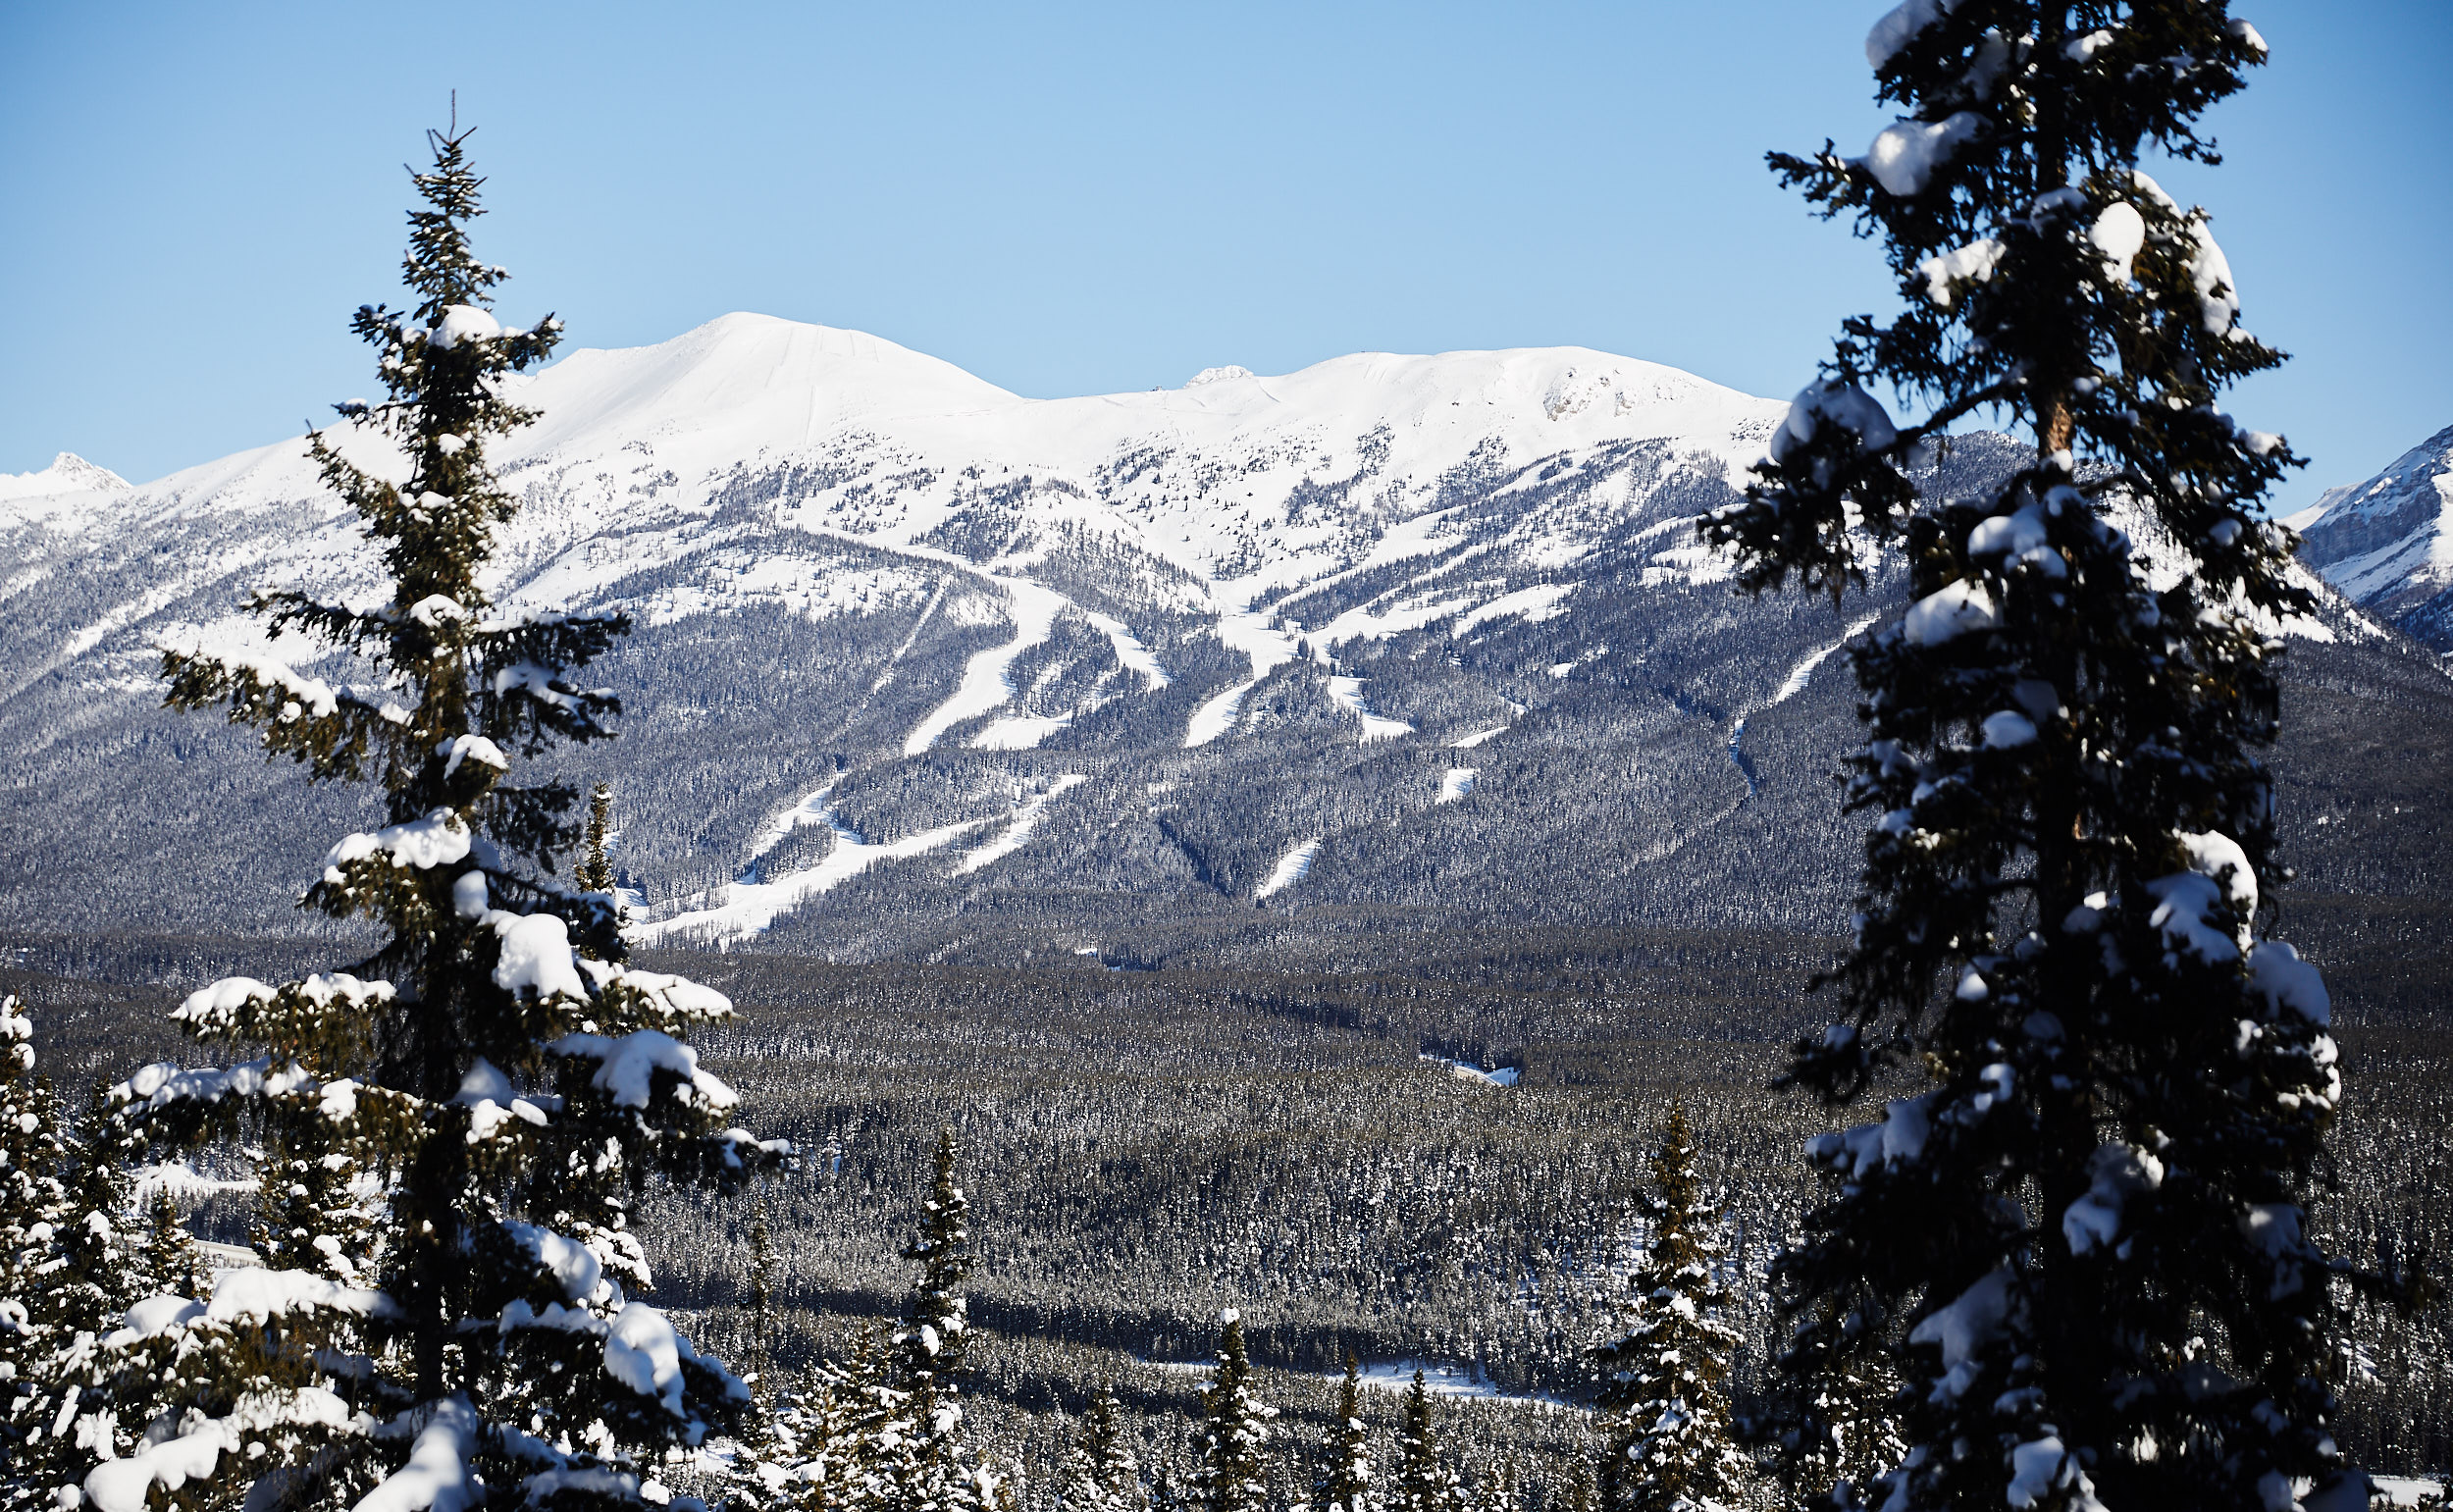 From across the valley you can see the Lake Louise Ski Resort.